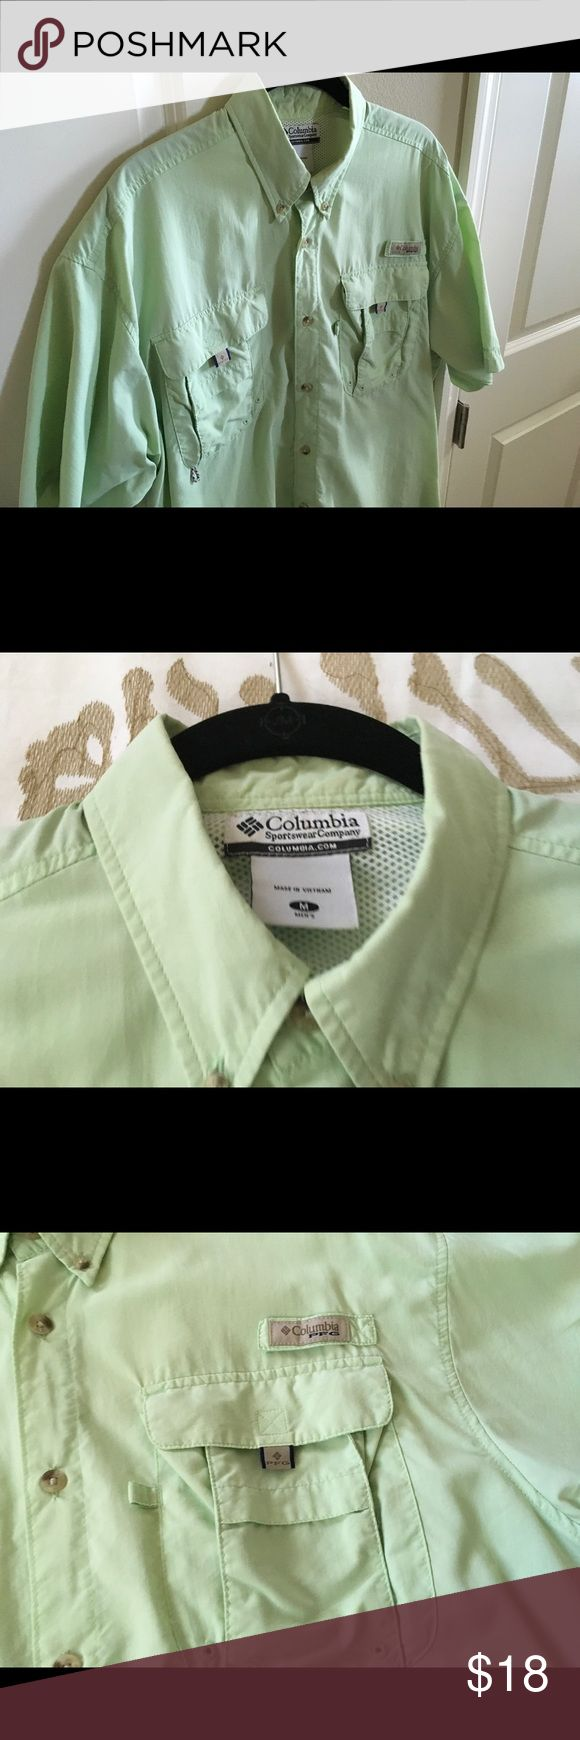 Men's Columbia PFG shirt sleeve shirt Beautiful light green Columbia PFG Omni Shade short sleeve button front shirt great condition size M nice and light fabric Columbia Shirts Casual Button Down Shirts